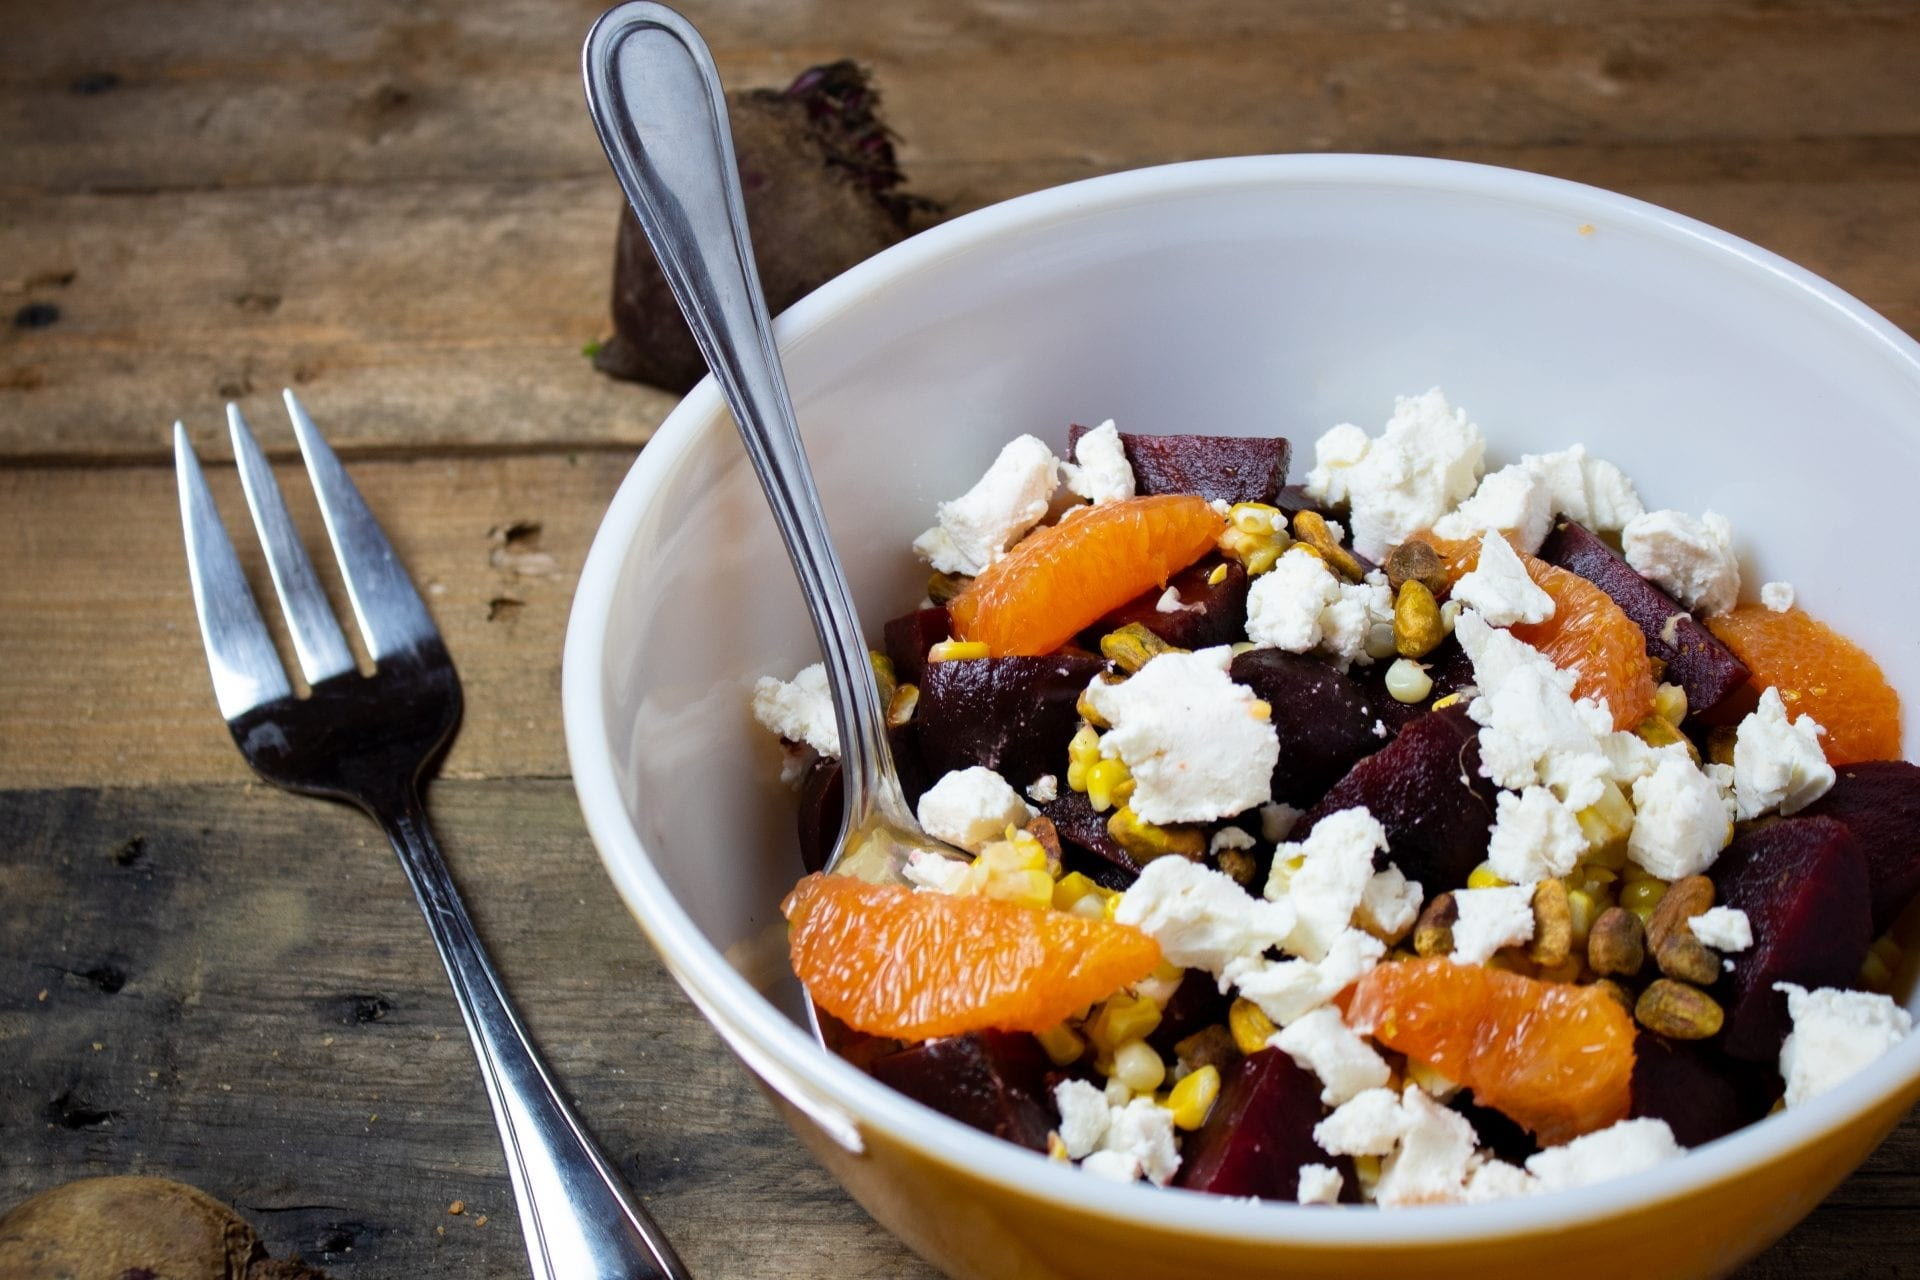 Roasted Beet Salad with Sweet Corn, Goat Cheese, and Pistachios